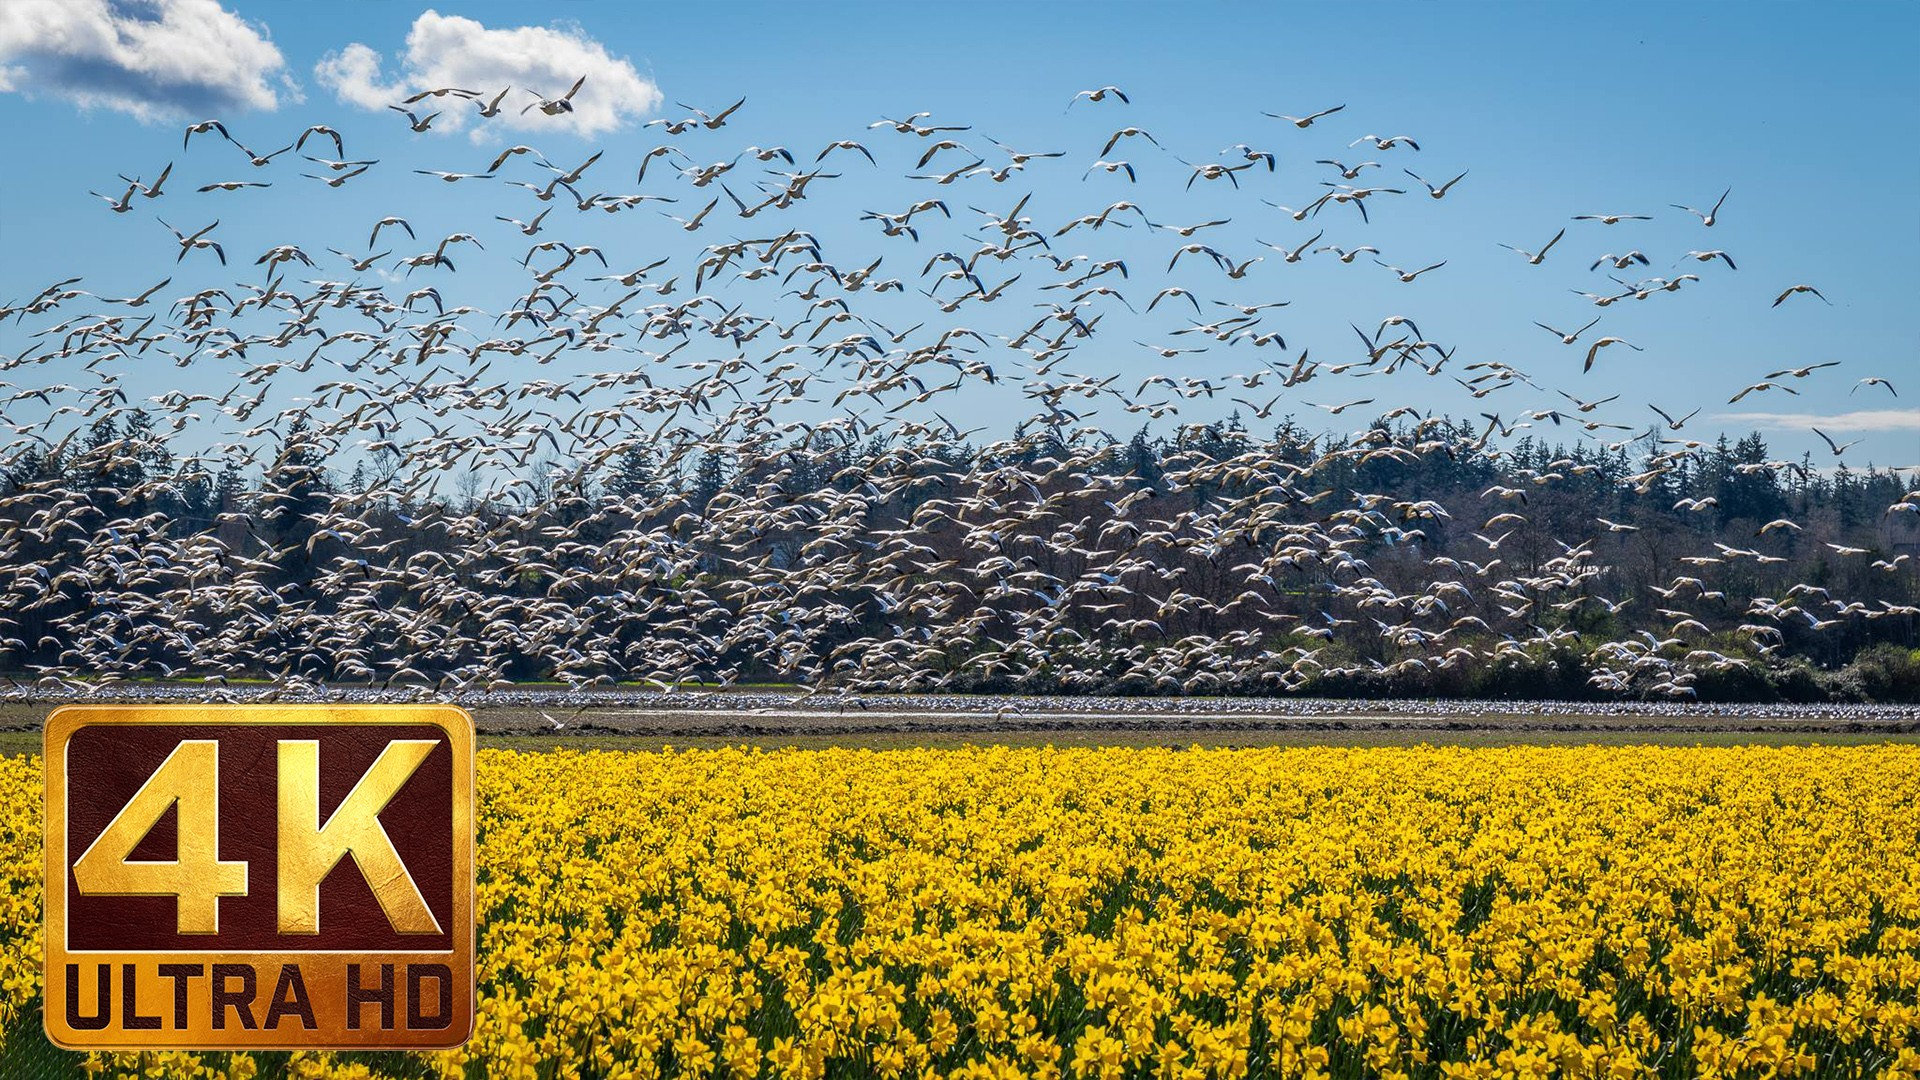 Skagit Valley Snow Geese. 4K Nature Relax Video